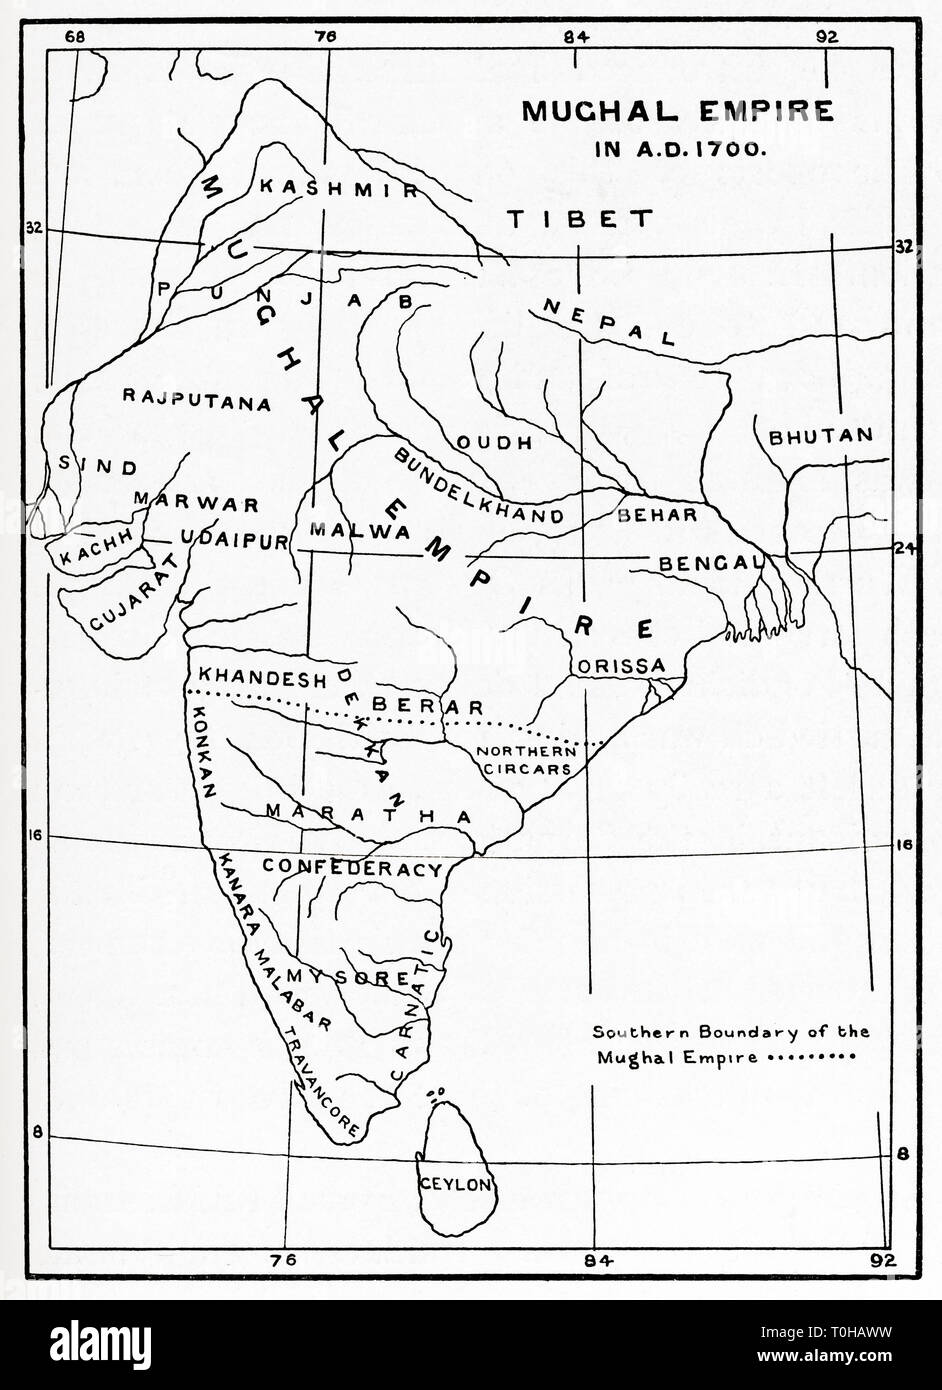 Map of the Mughal Empire in India, 1700 - Stock Image